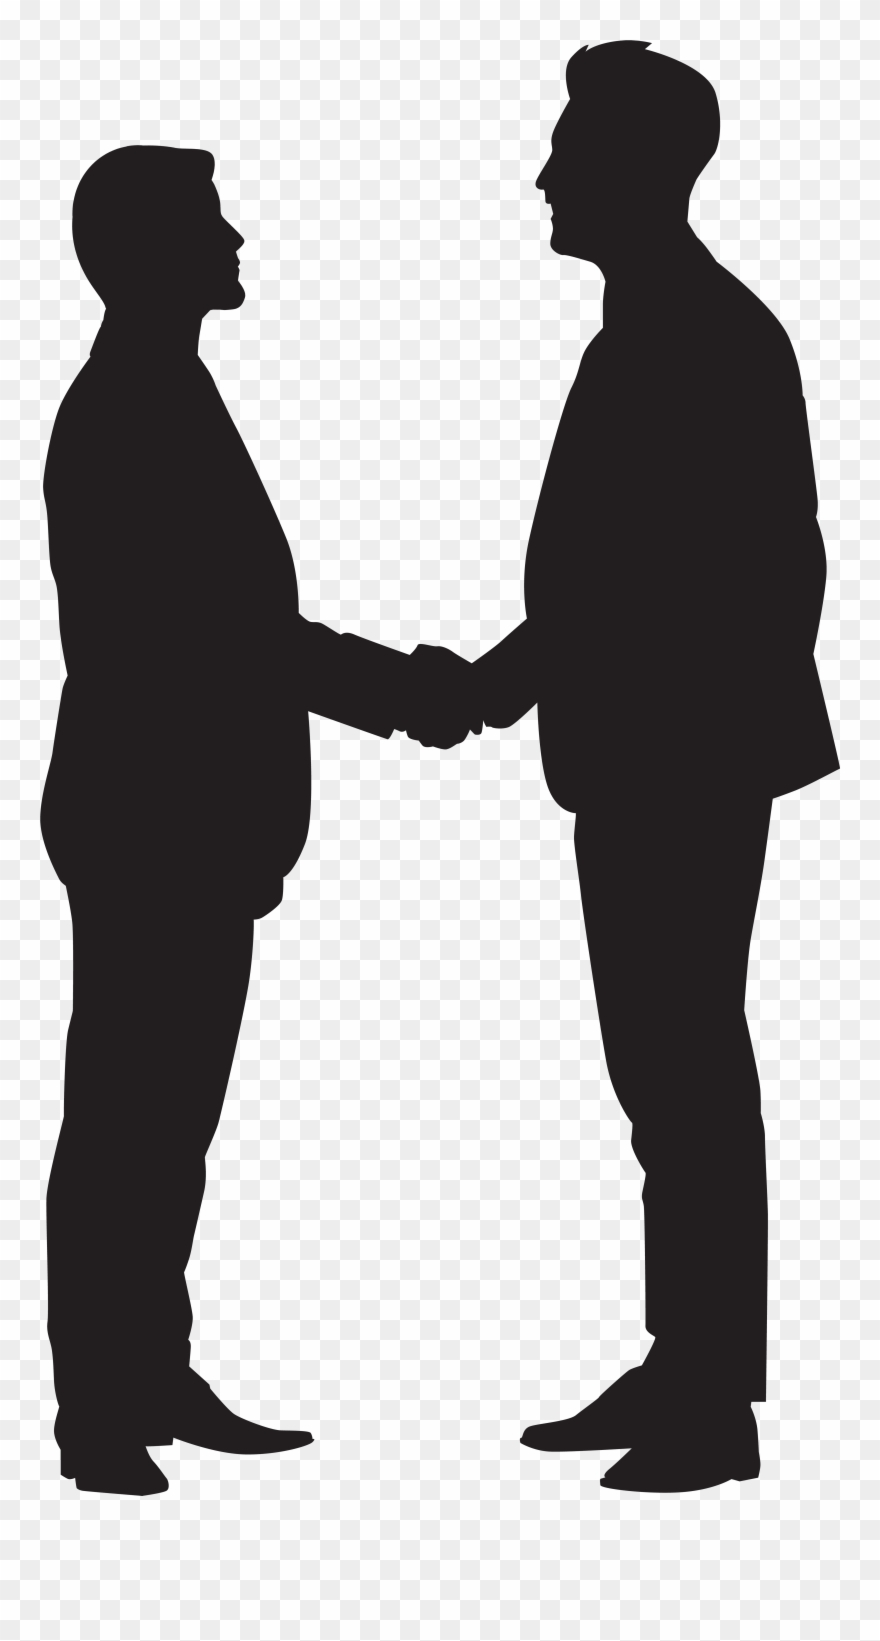 Clipart people shaking hands clip art royalty free library Men Shaking Hands Clipart - Png Download (#107918) - PinClipart clip art royalty free library